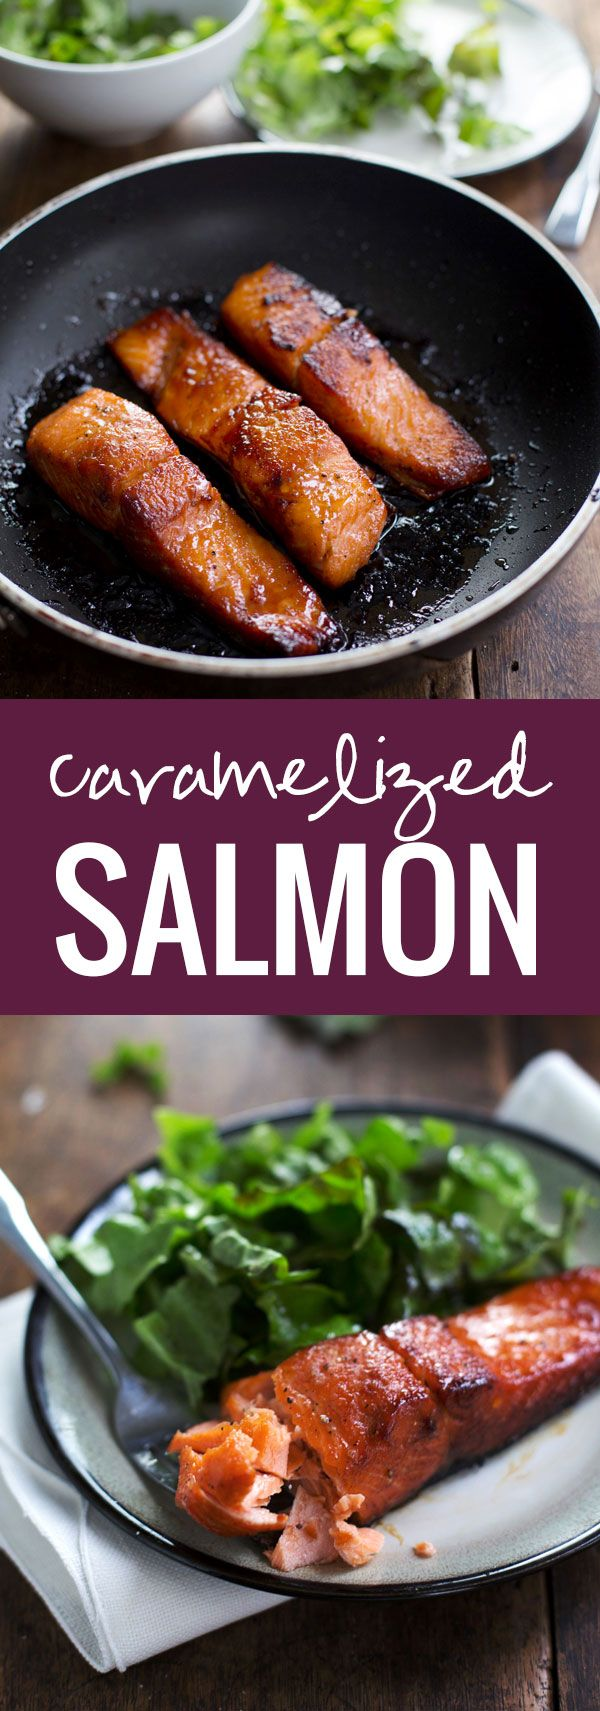 nikes for women over 35 Caramelized Salmon   Five ingredients  Twenty minutes  Perfect texture  Addicting flavor  Healthy for your bod  Pretty to look at